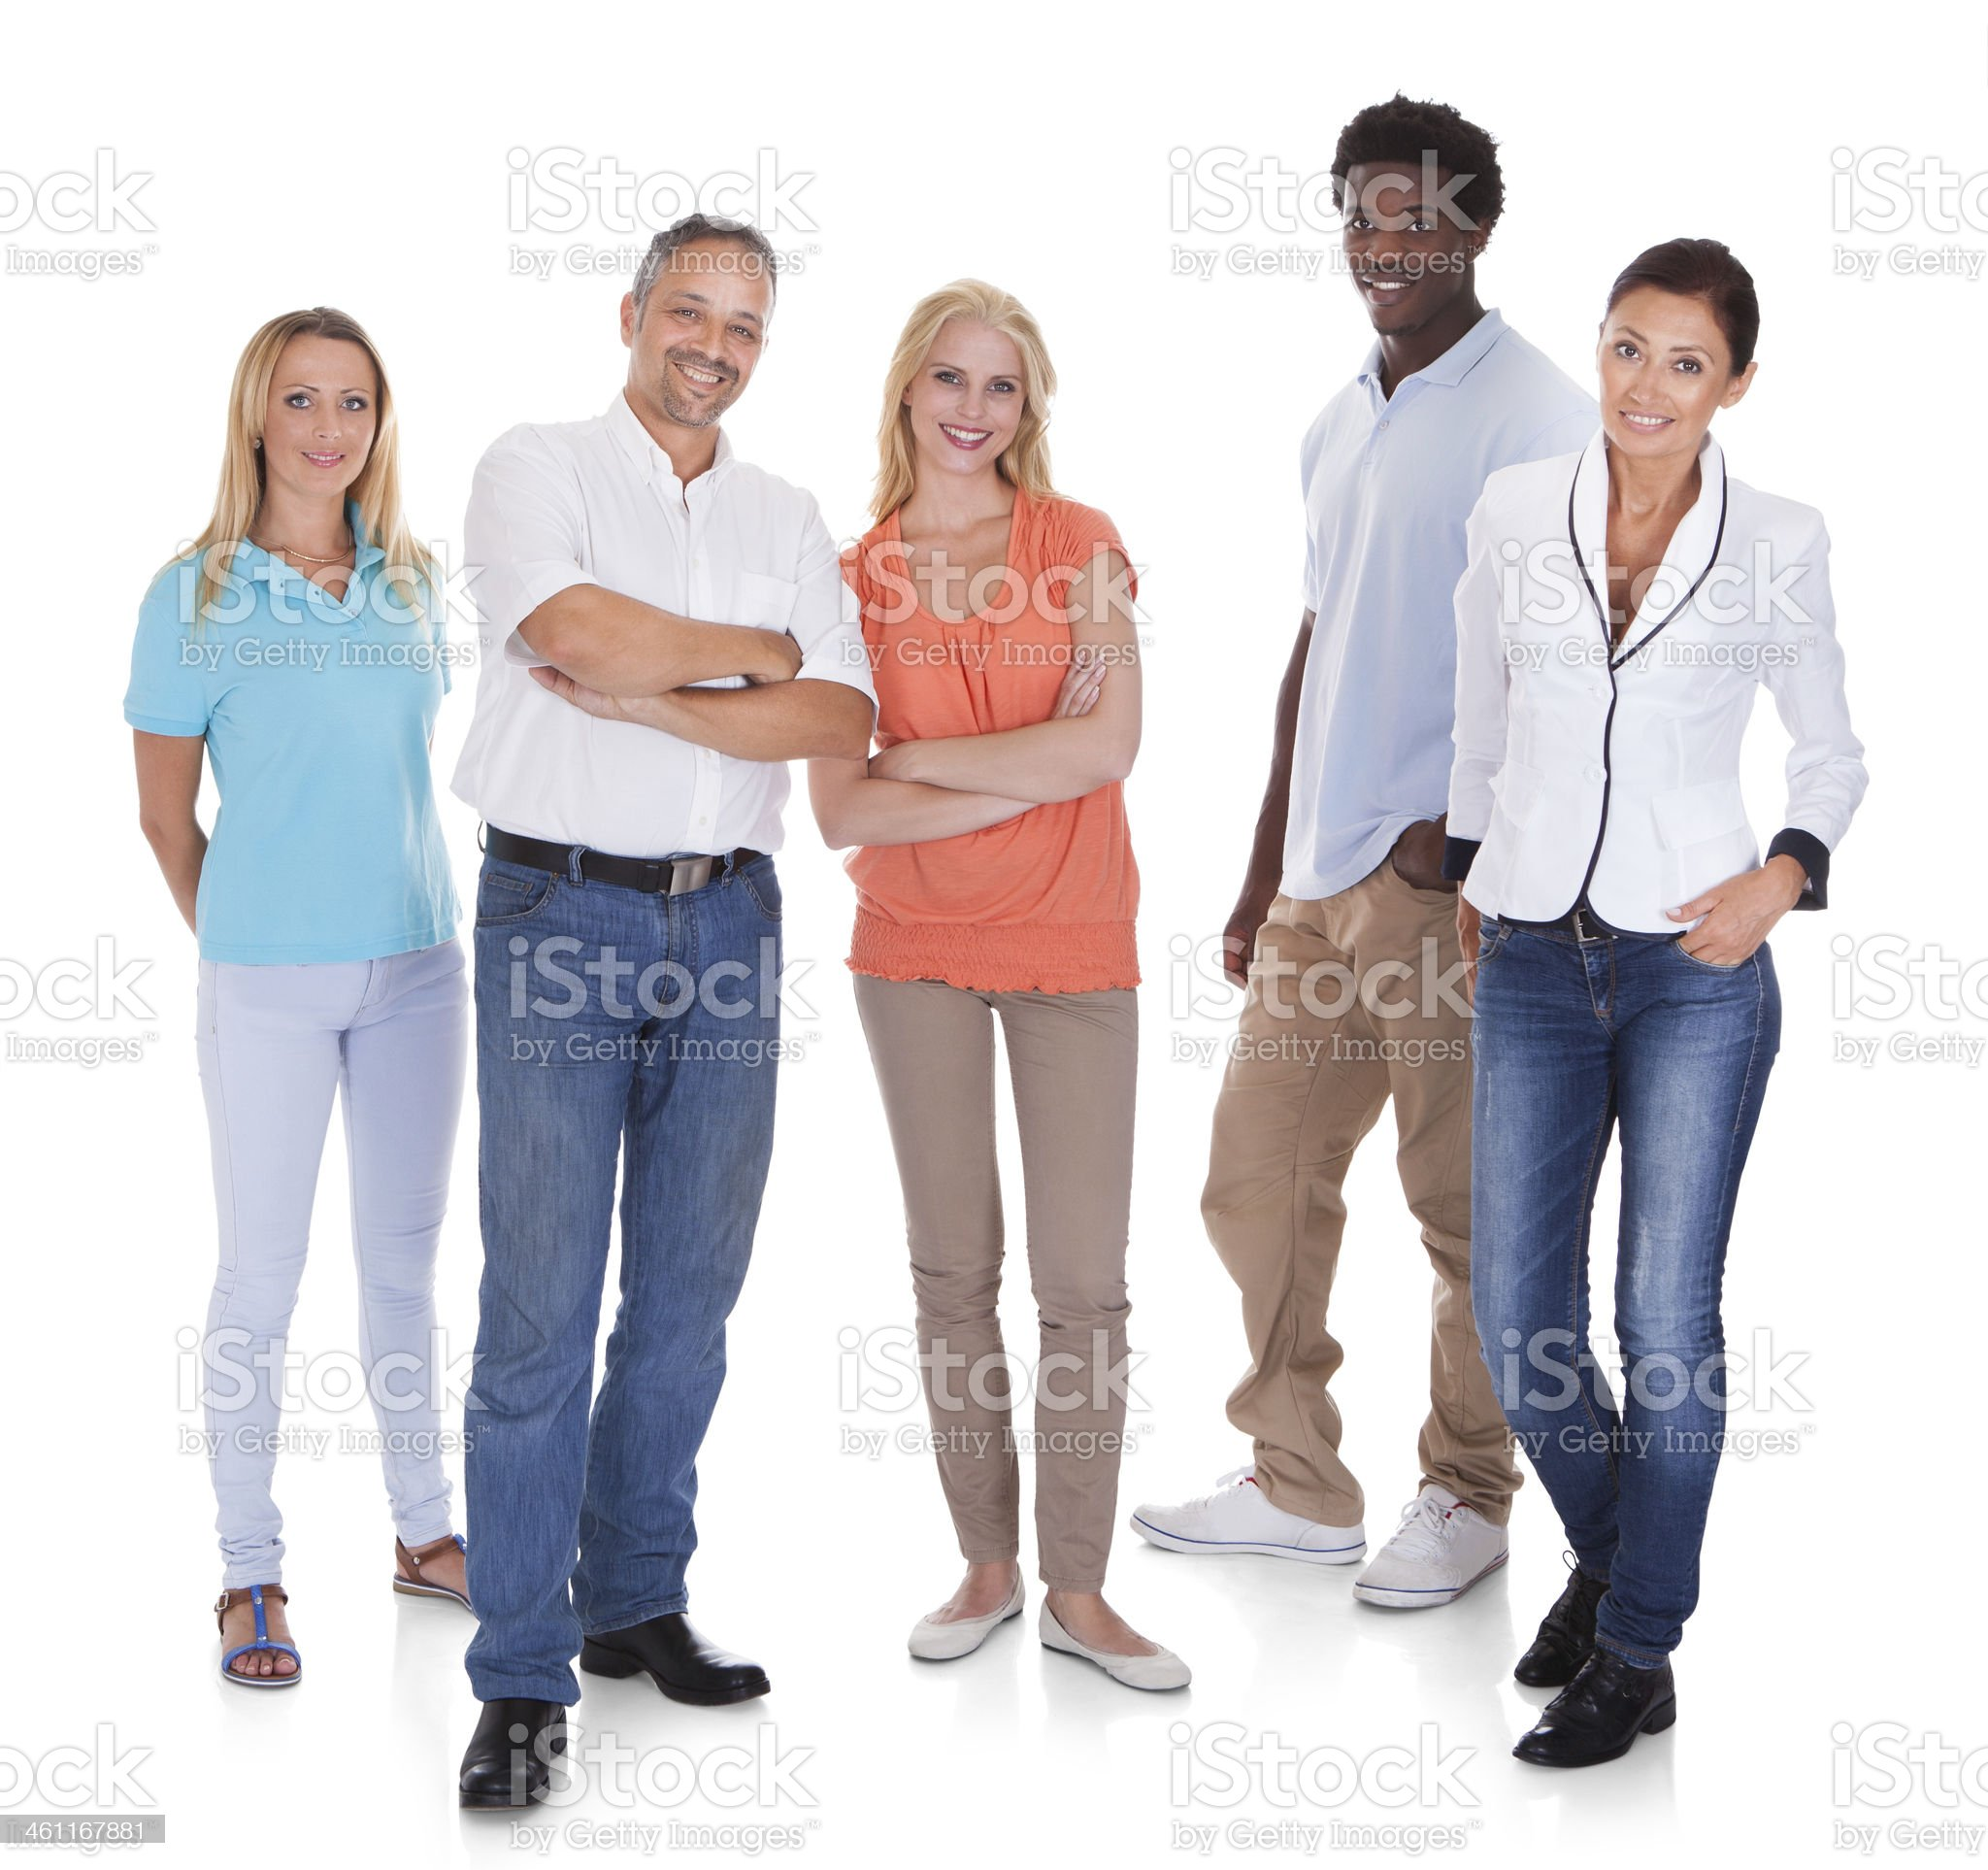 Multi-racial Group Of People royalty-free stock photo